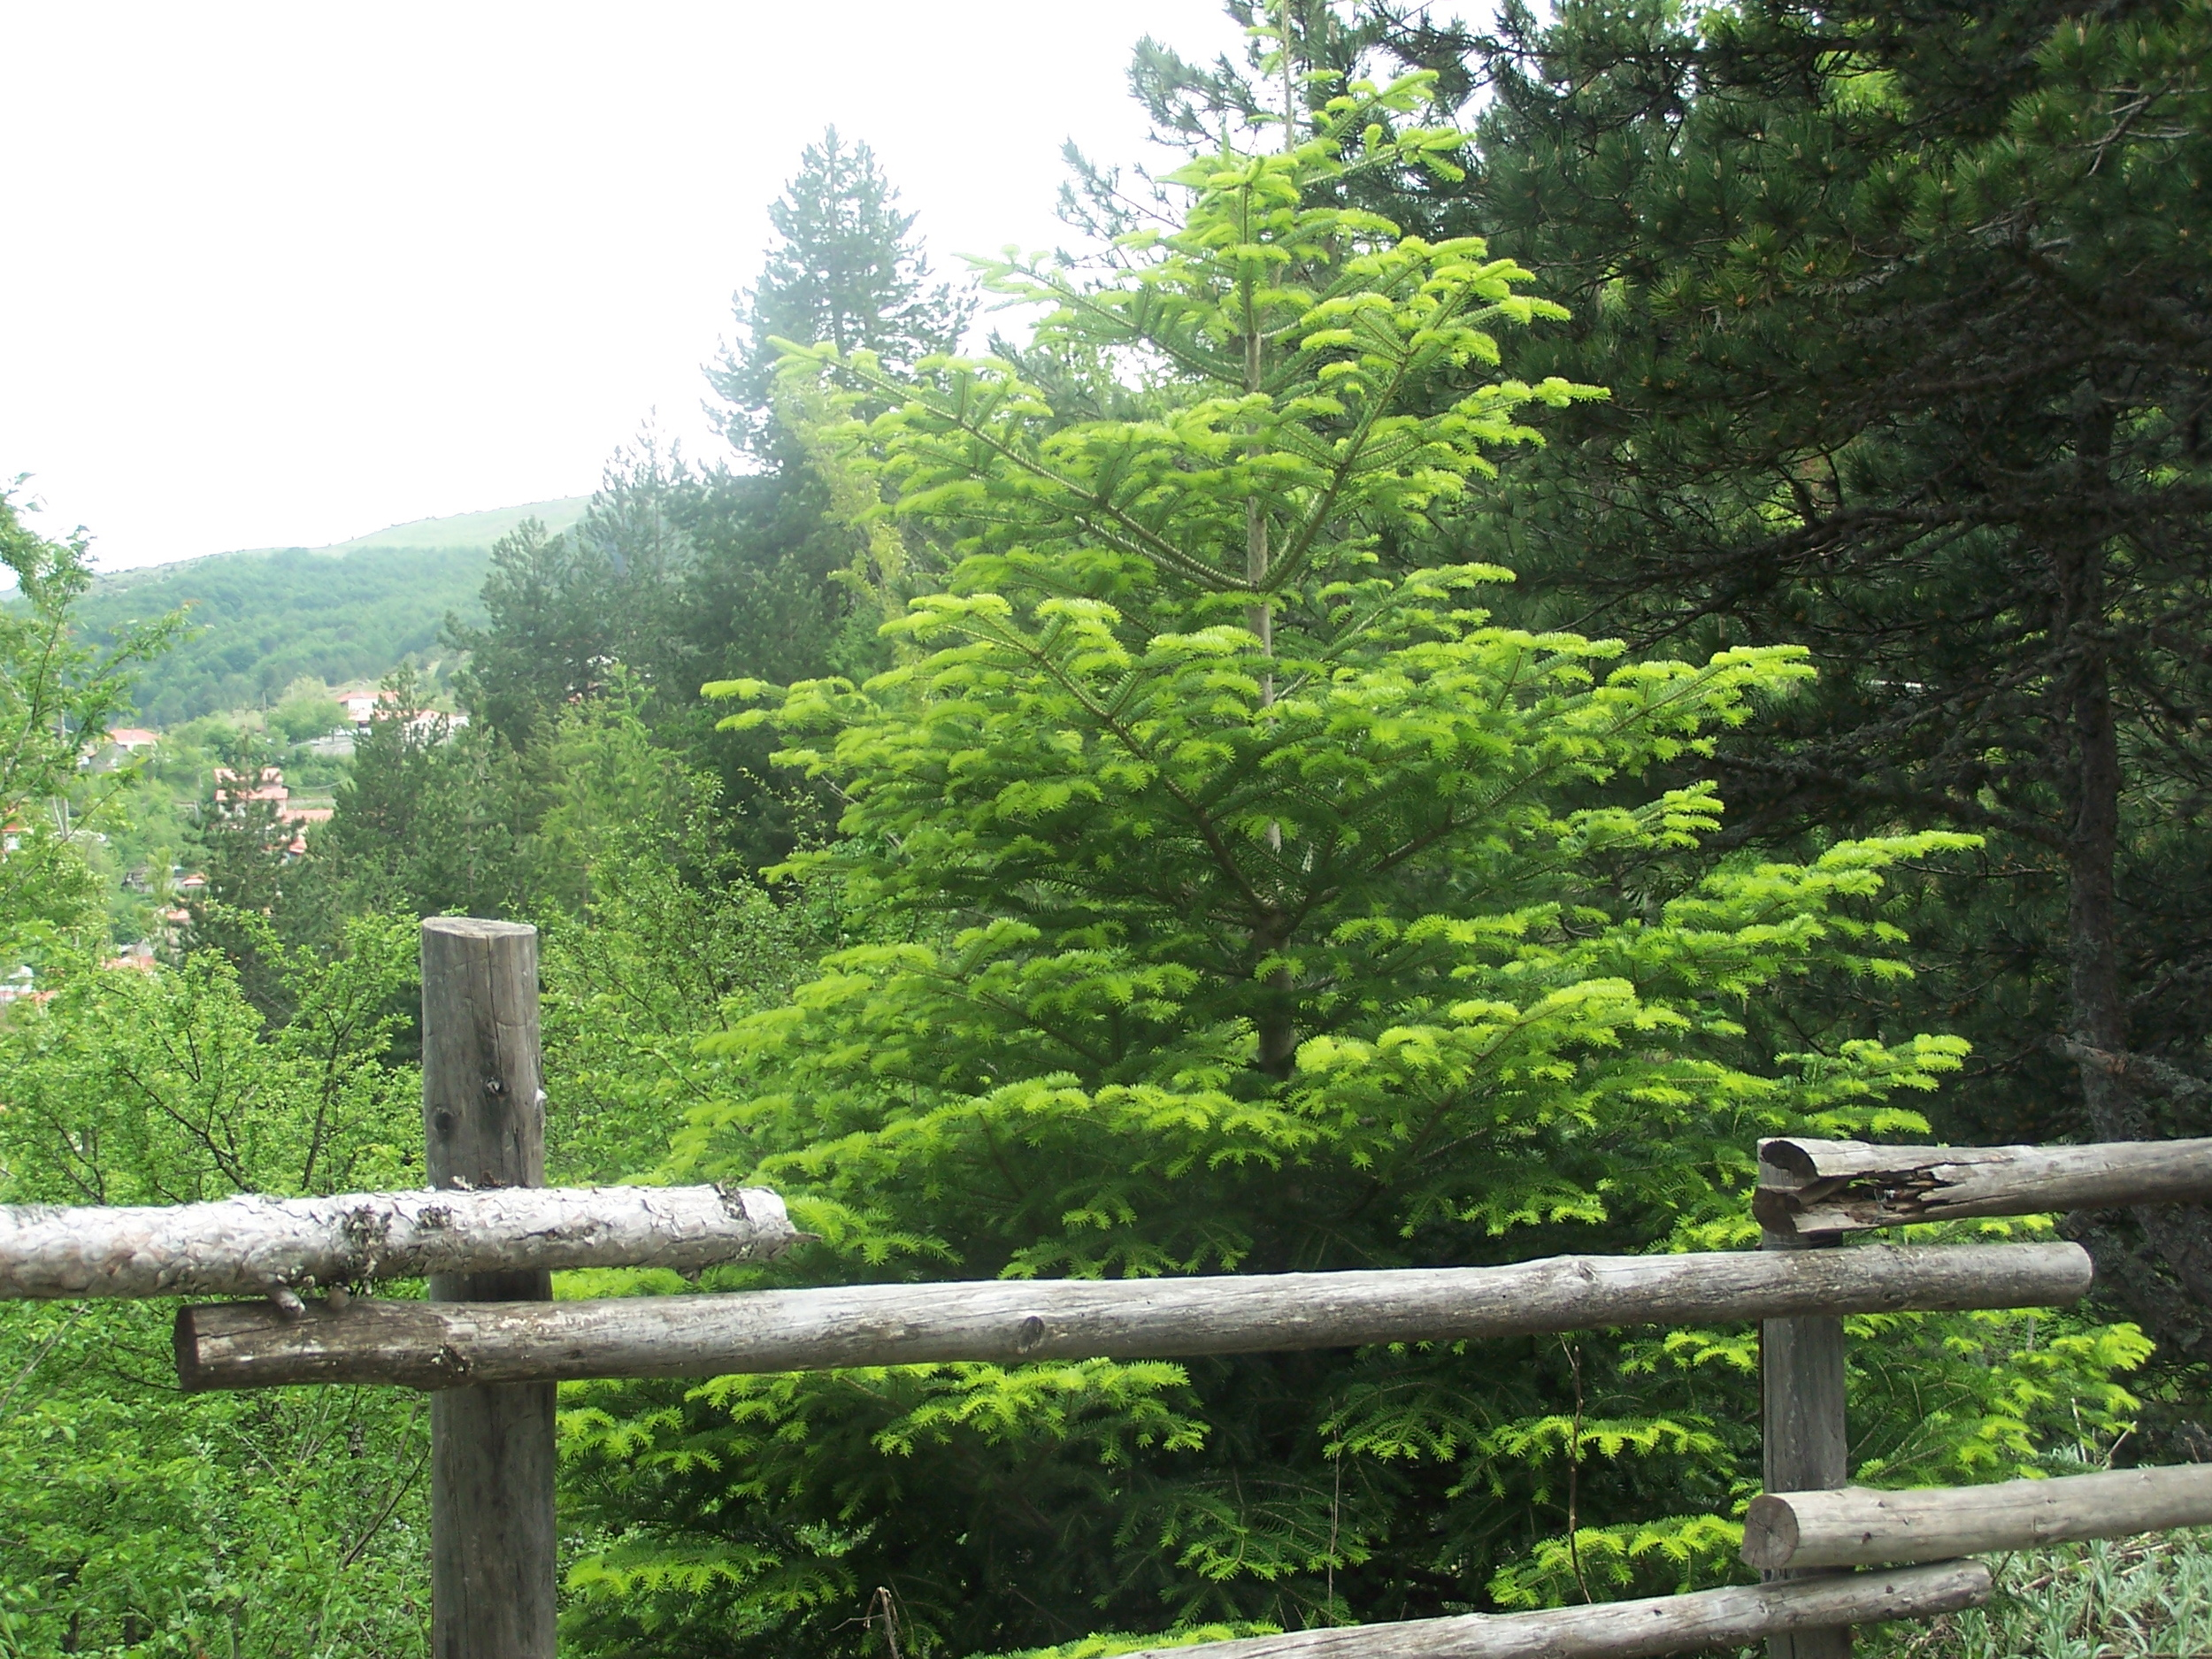 woodenfence_tree_spring.jpg